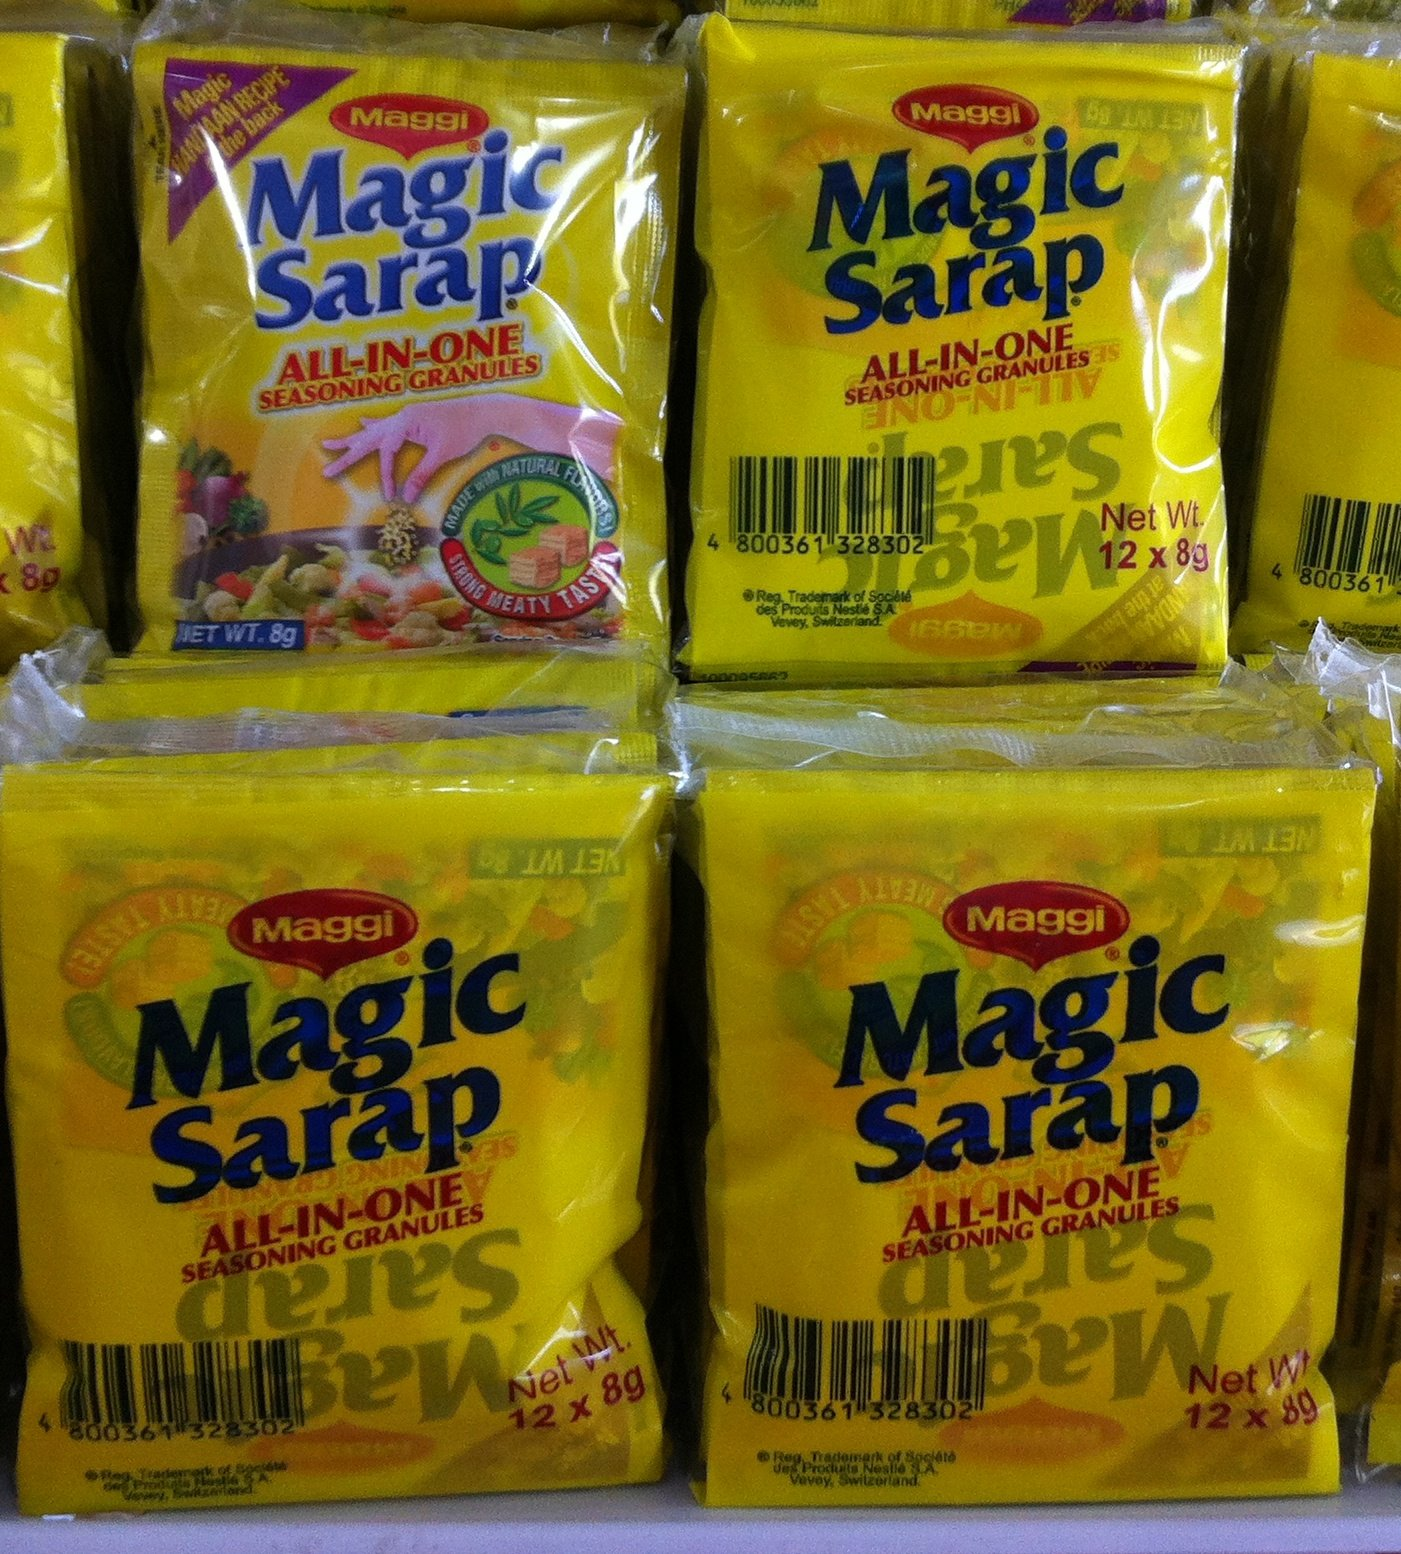 5 PACKS Maggi Magic Sarap Philippines All-in-One Seasoning Granules (12PCS/PACK) by Nestle, Inc. (Image #1)